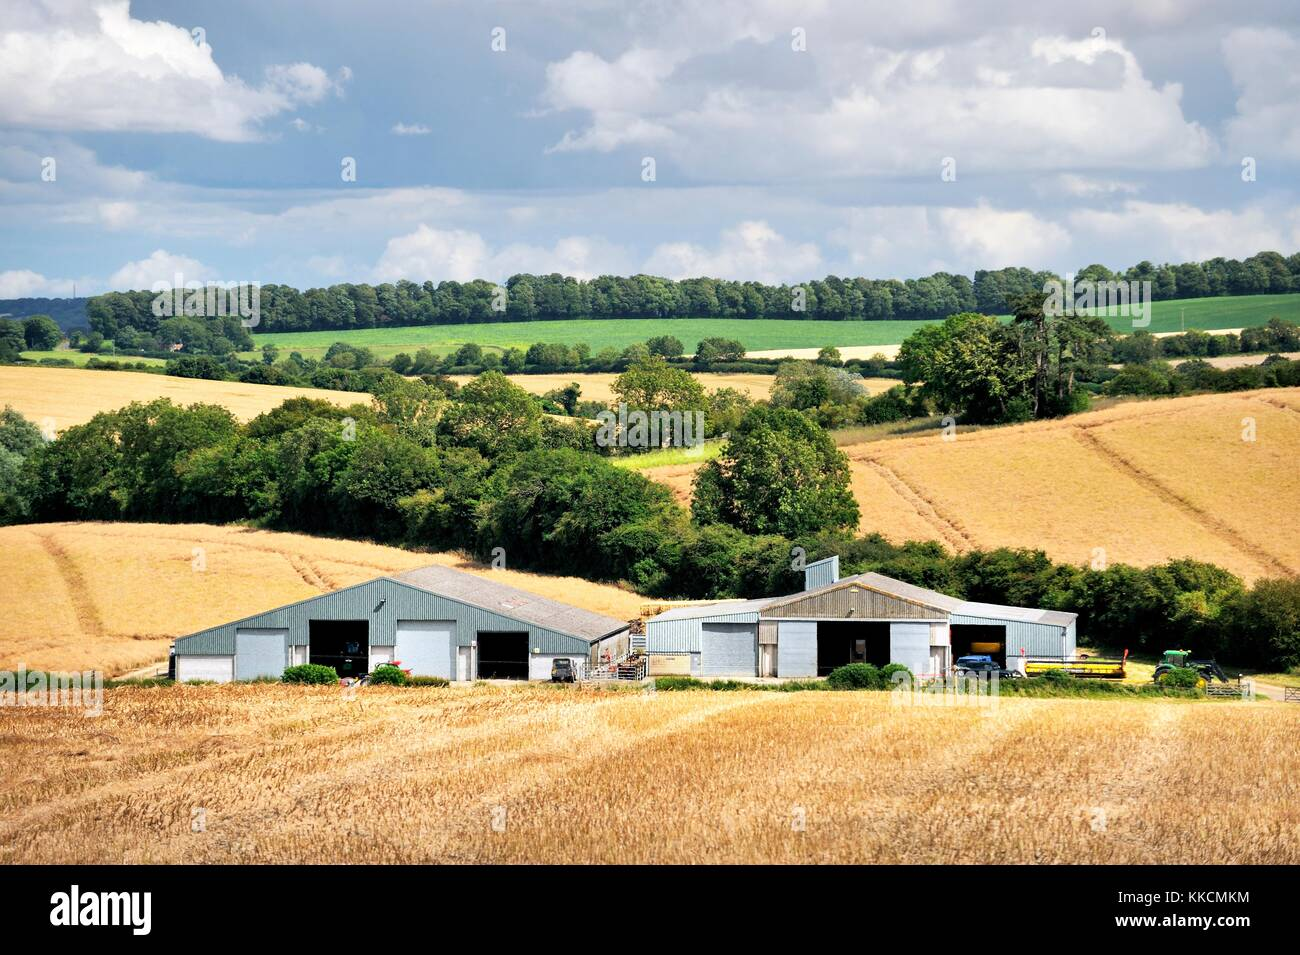 Modern agricultural barns and farmland farm crop fields in the rural chalk downs landscape of Wiltshire. Near Avebury. - Stock Image